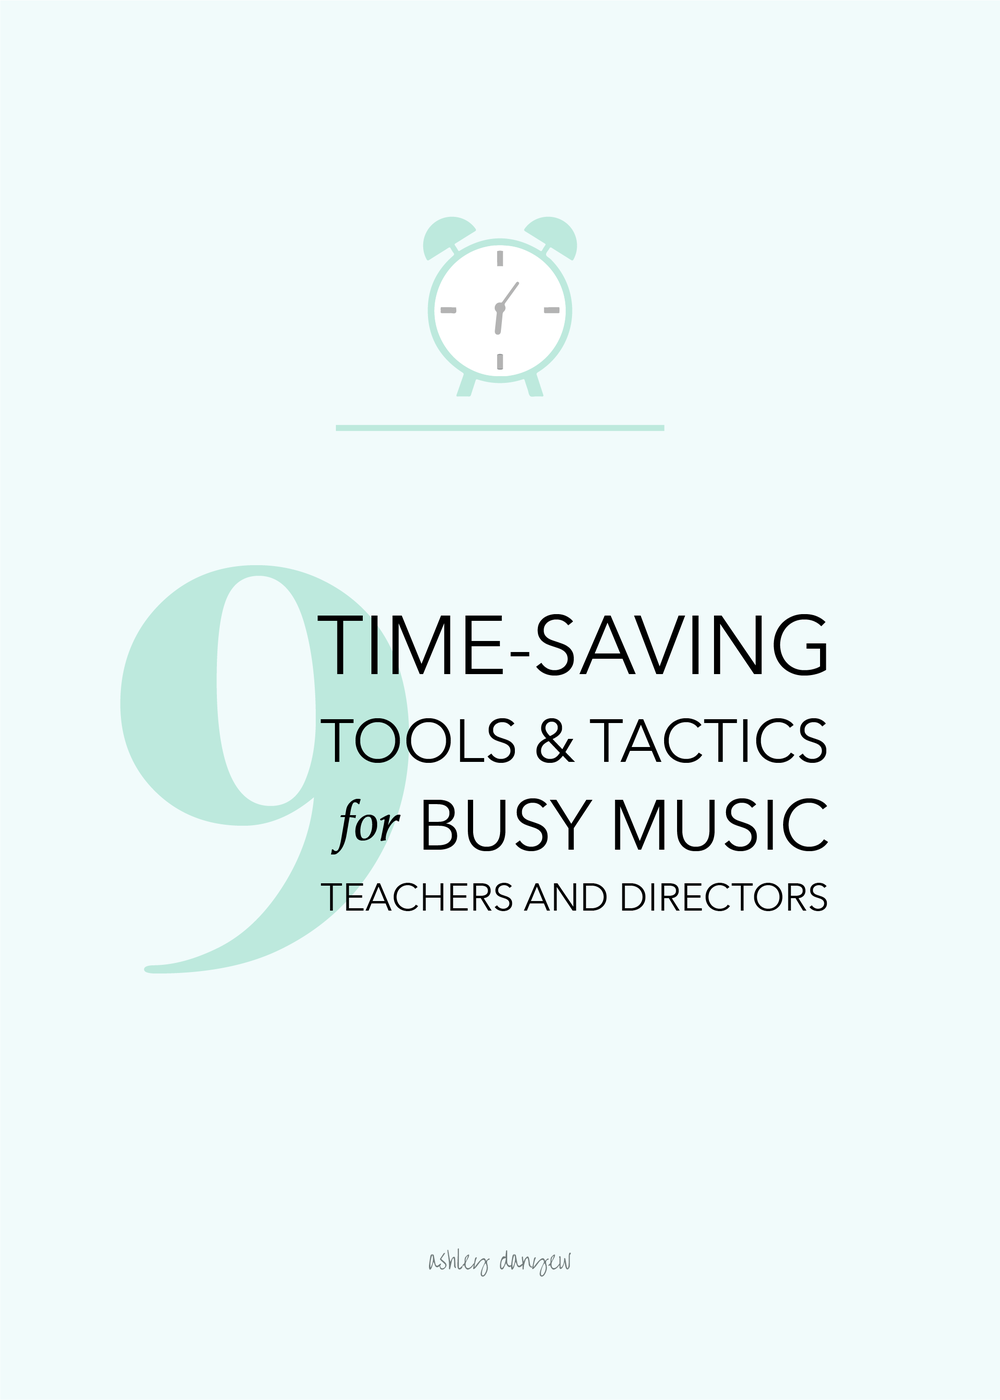 9 Time-Saving Tools and Tactics for Busy Music Teachers and Directors-29.png